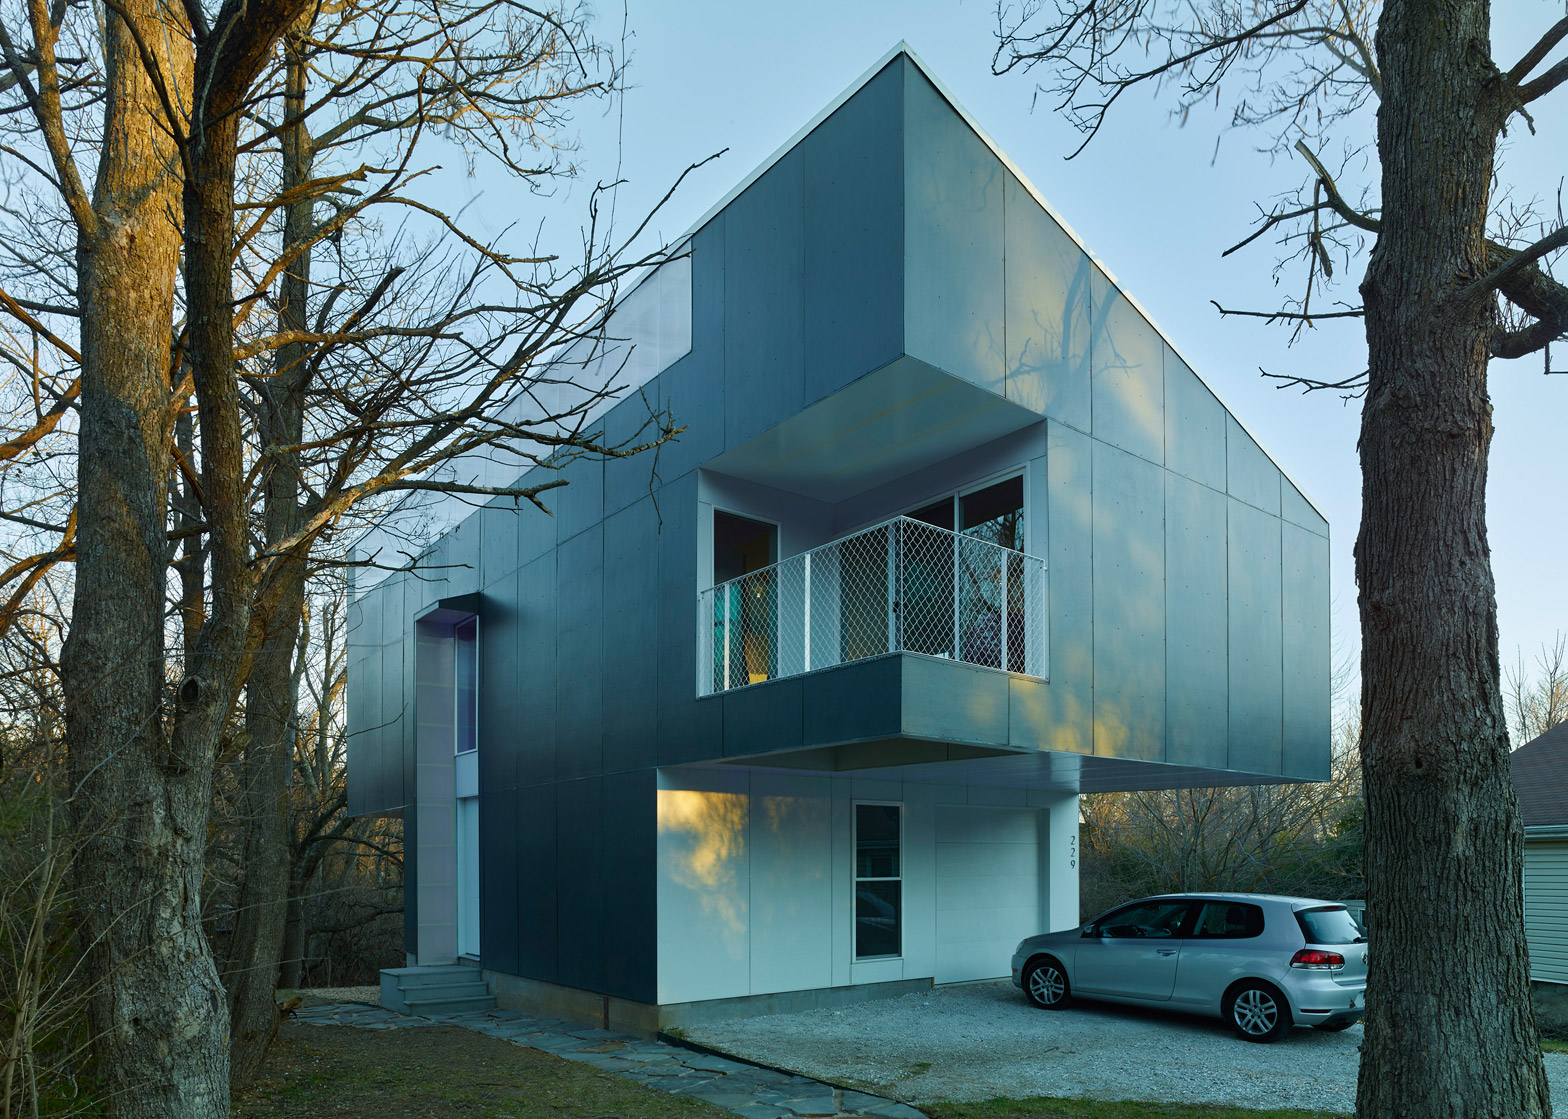 Good 7 Of 12; Mood Ring House By Silo AR+D In Fayetteville, Arkansas